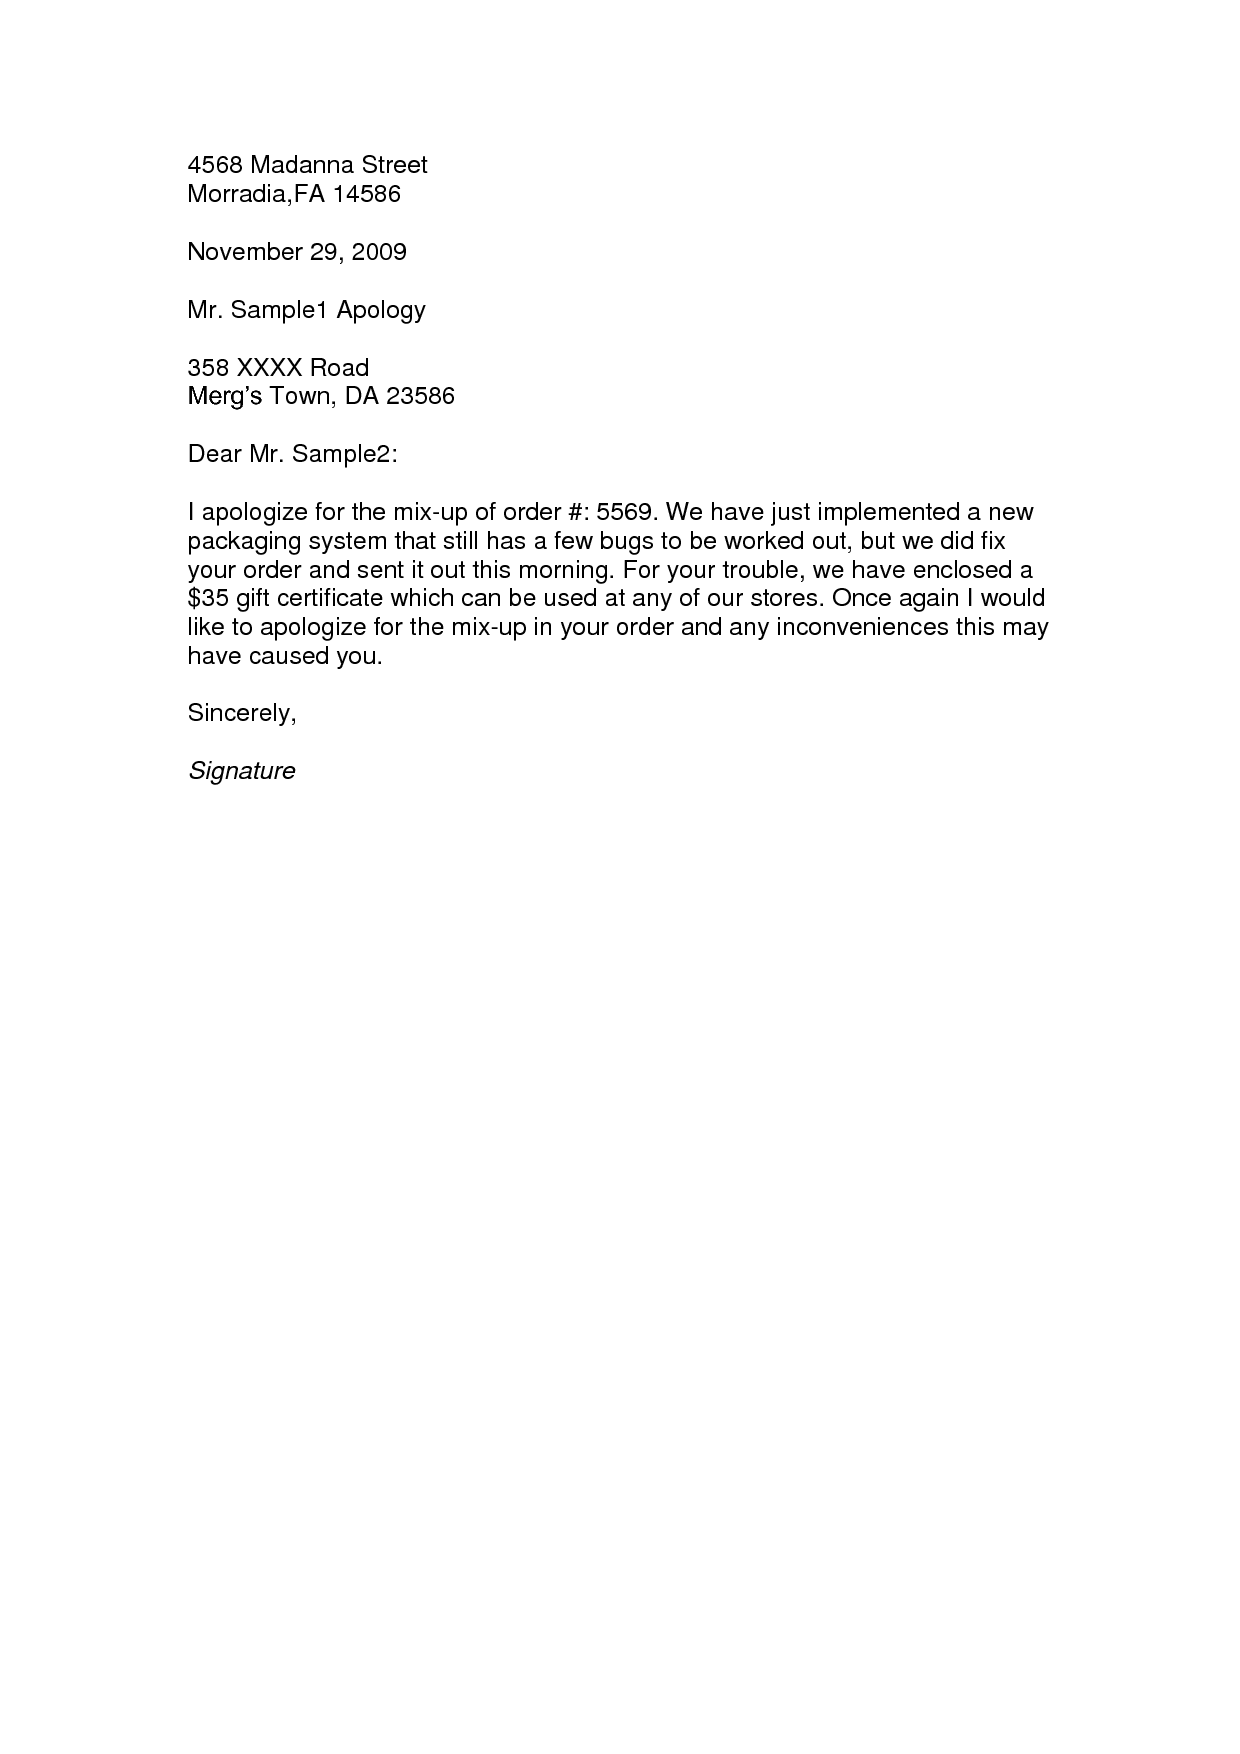 apology letter samples jianbochen sample template character